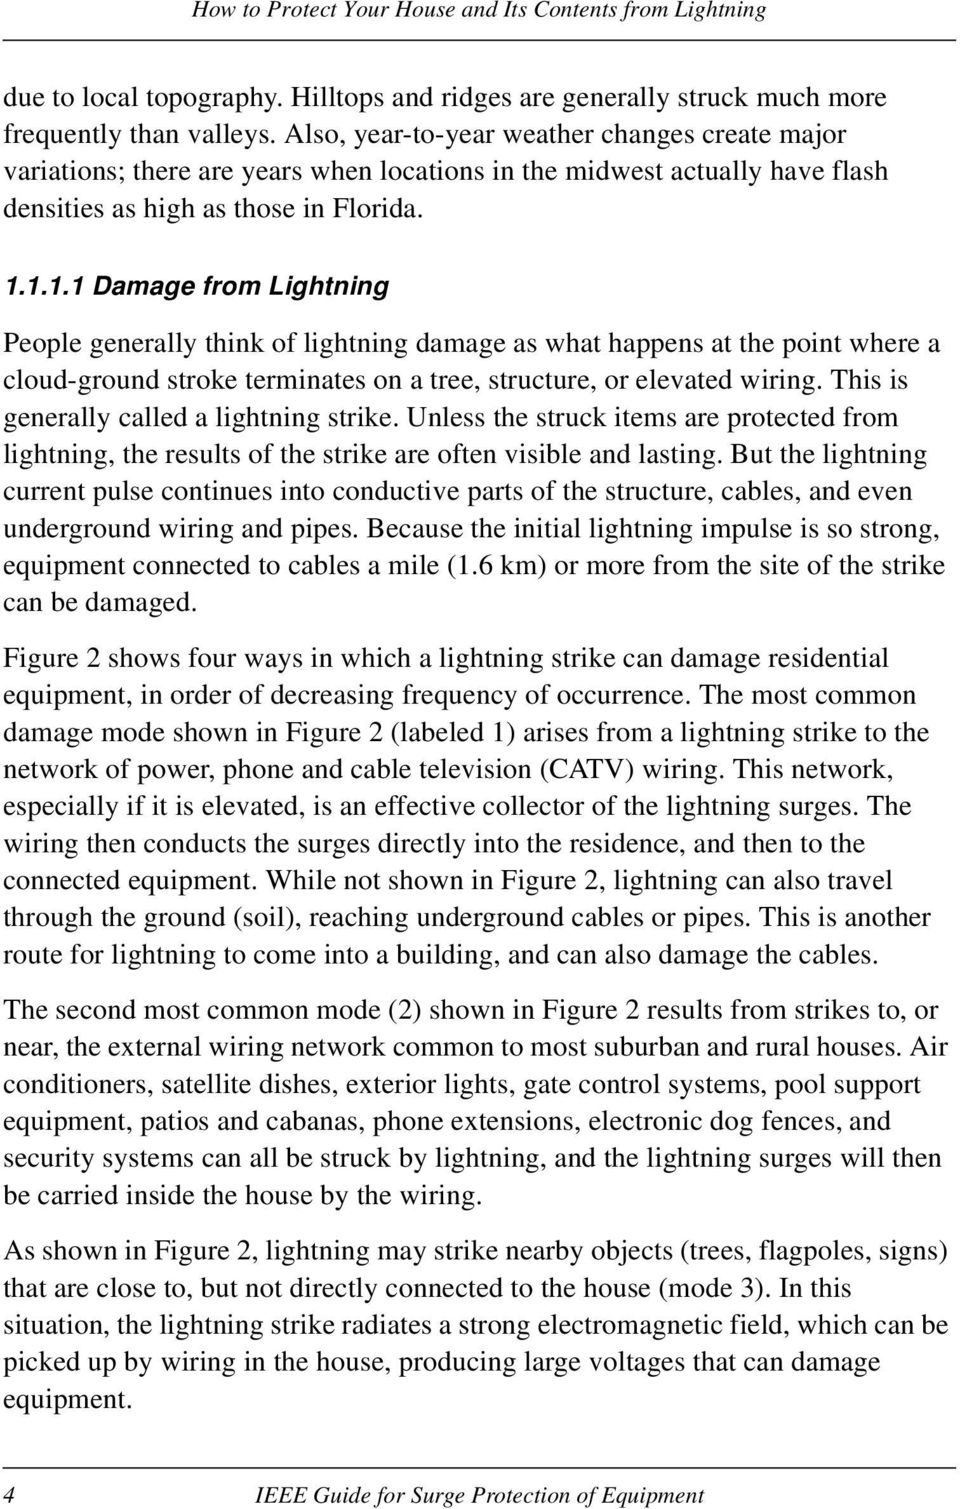 1.1.1 Damage from Lightning People generally think of lightning damage as what happens at the point where a cloud-ground stroke terminates on a tree, structure, or elevated wiring.